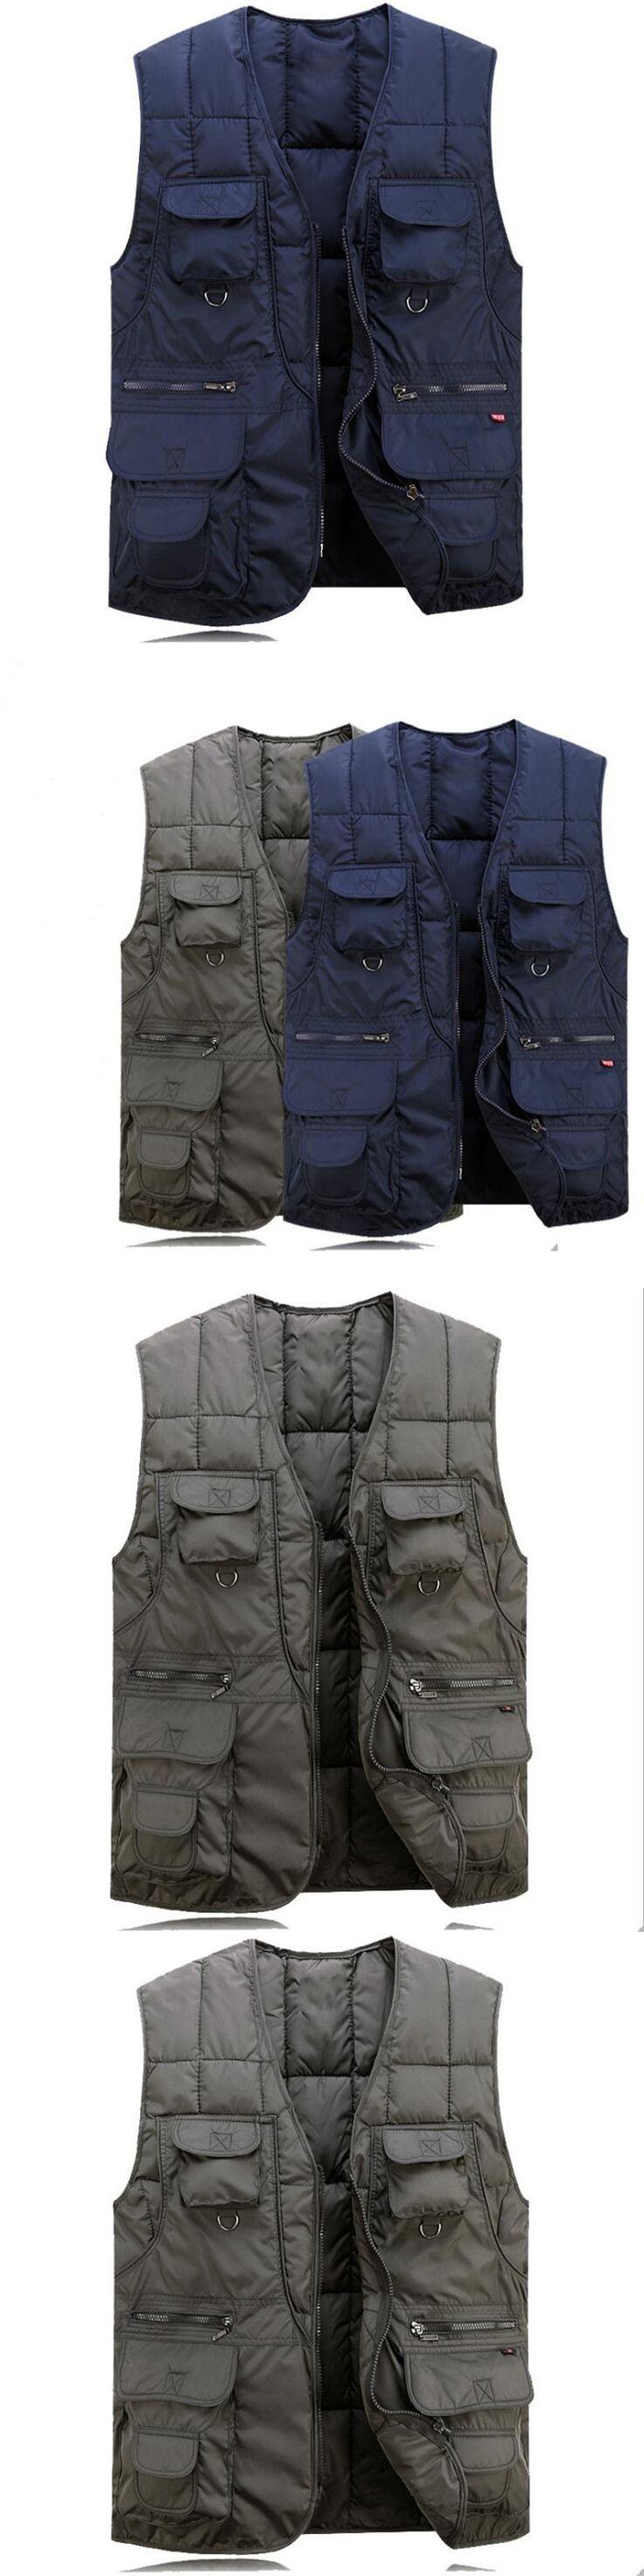 Men Vest Cotton Thicken Plus Size Outwear Coat Army Loose Man Waistcoat With Many Pockets Men'S Sleeveless Jacket And Coat A3530